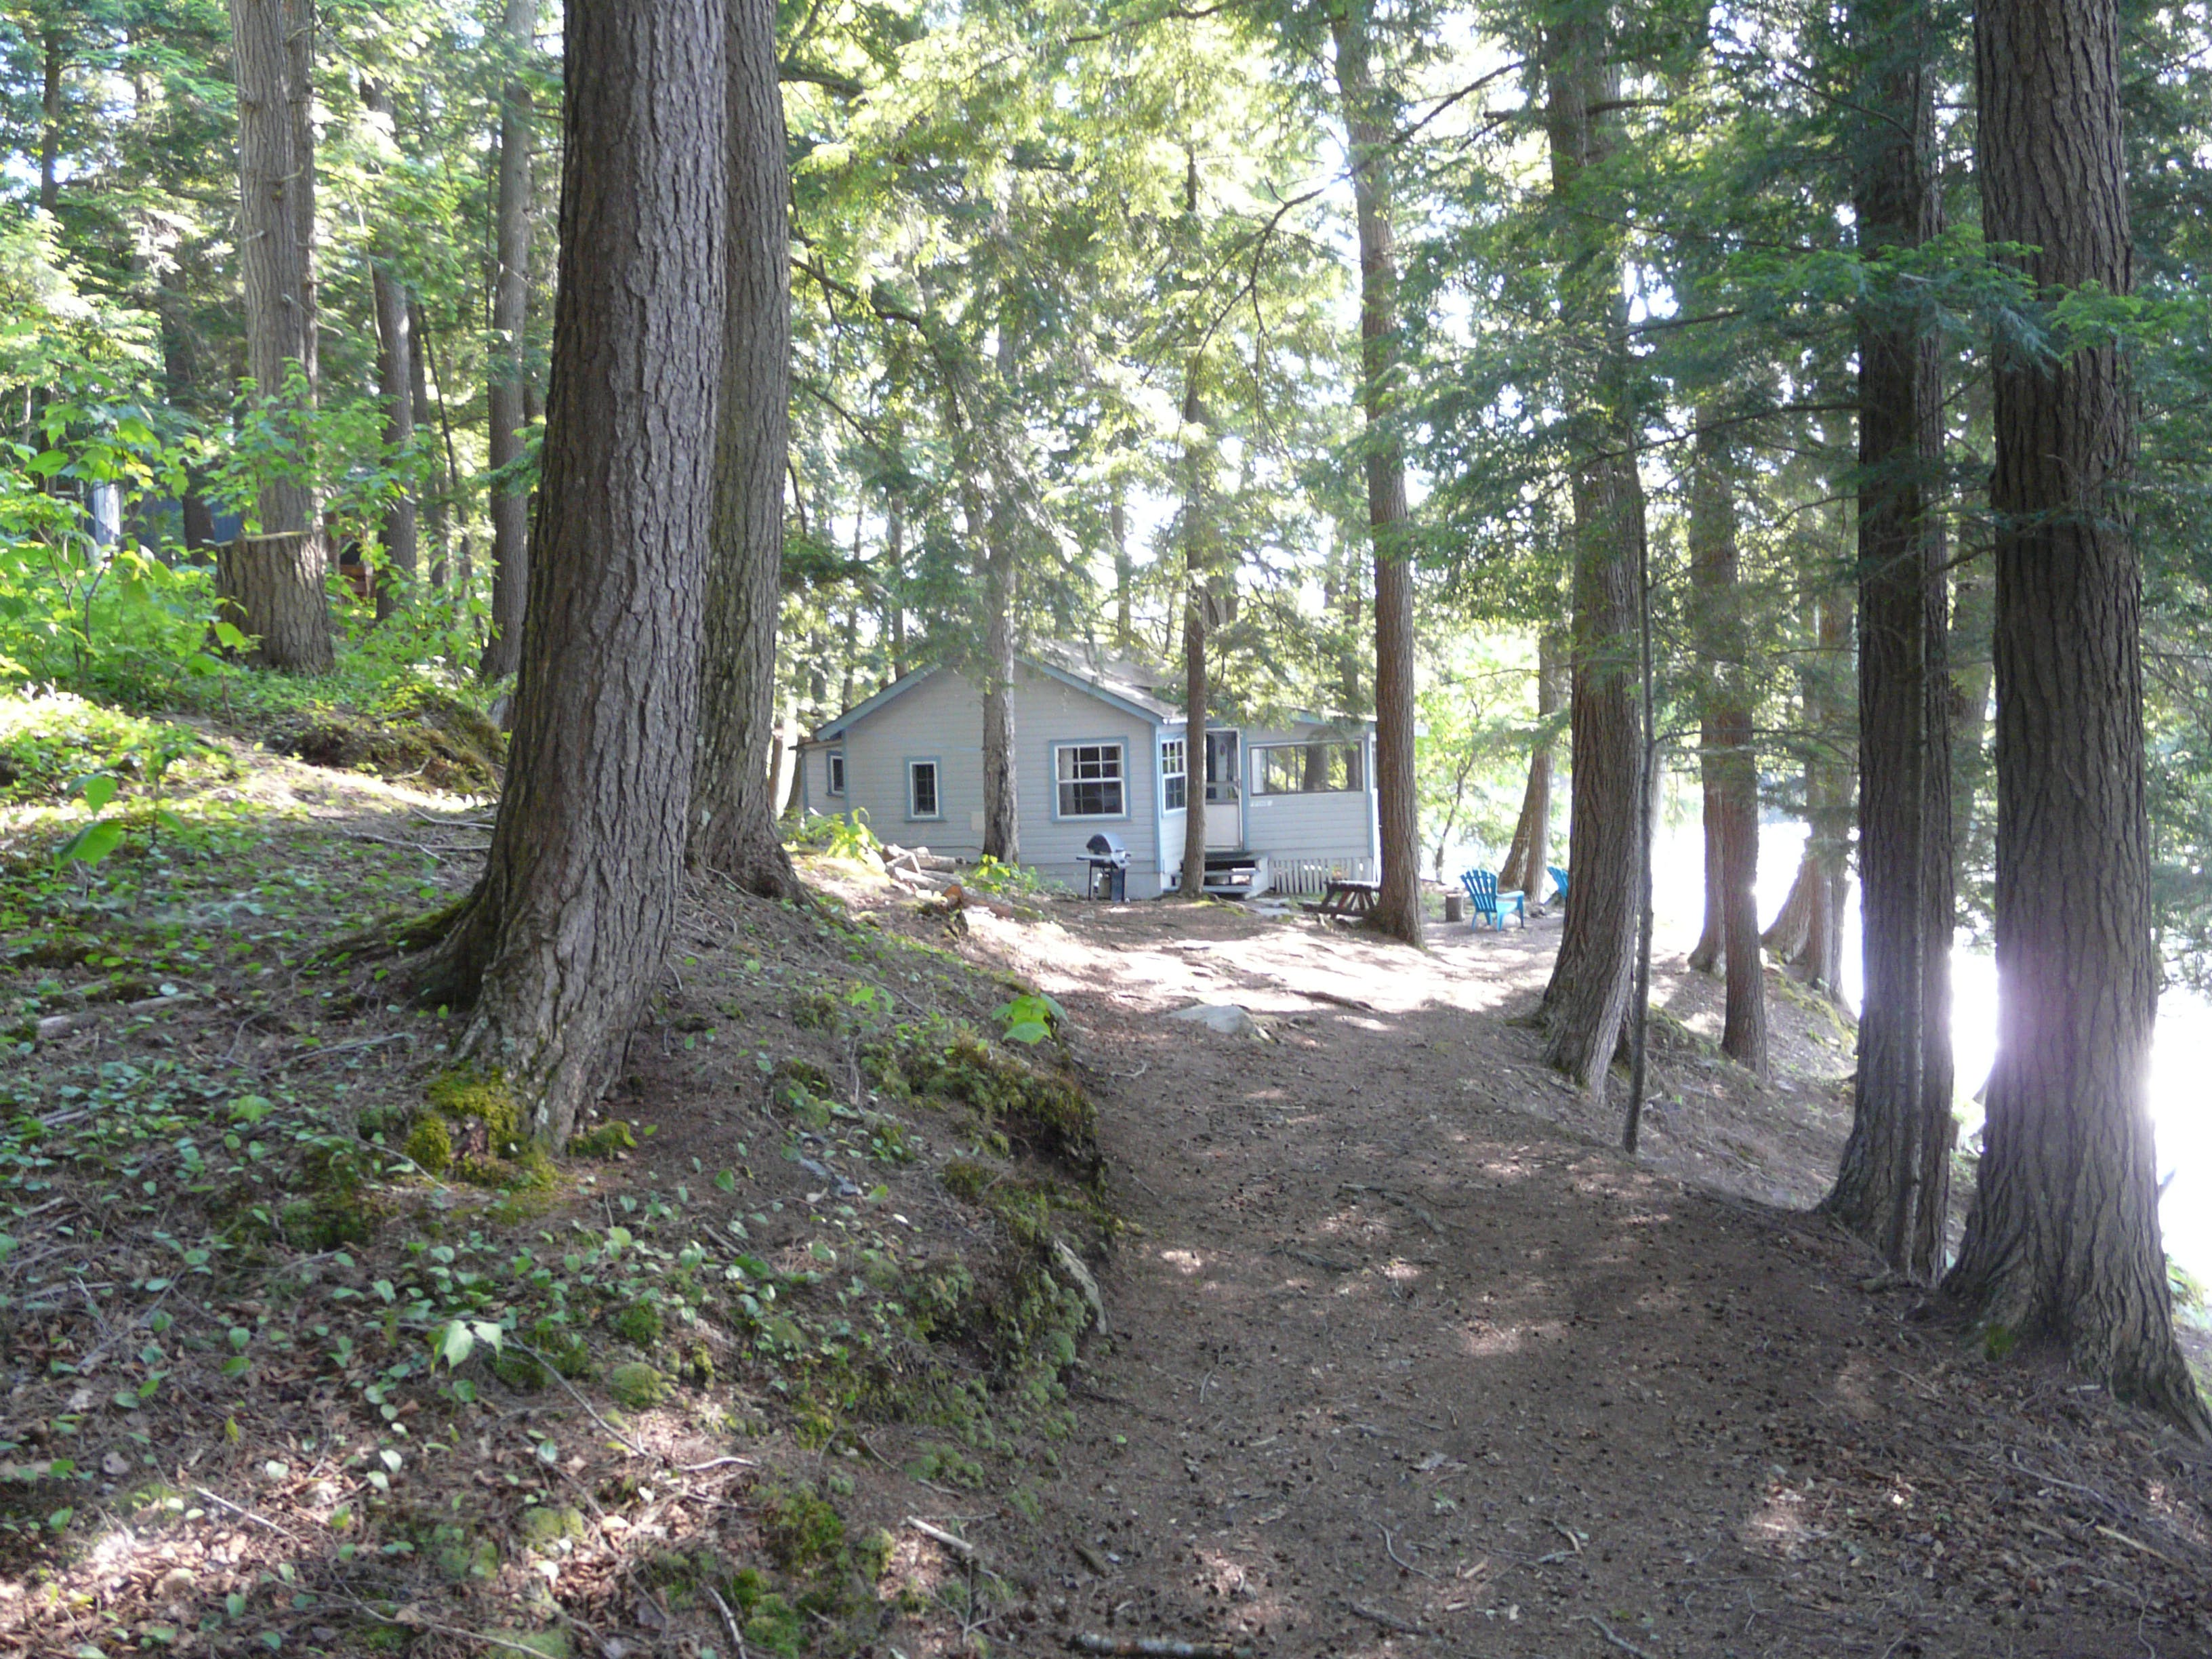 Cozy lakeside cottage rental nestled in the woods on beautiful Walker Lake in Muskoka near Huntsville and Algonquin Park